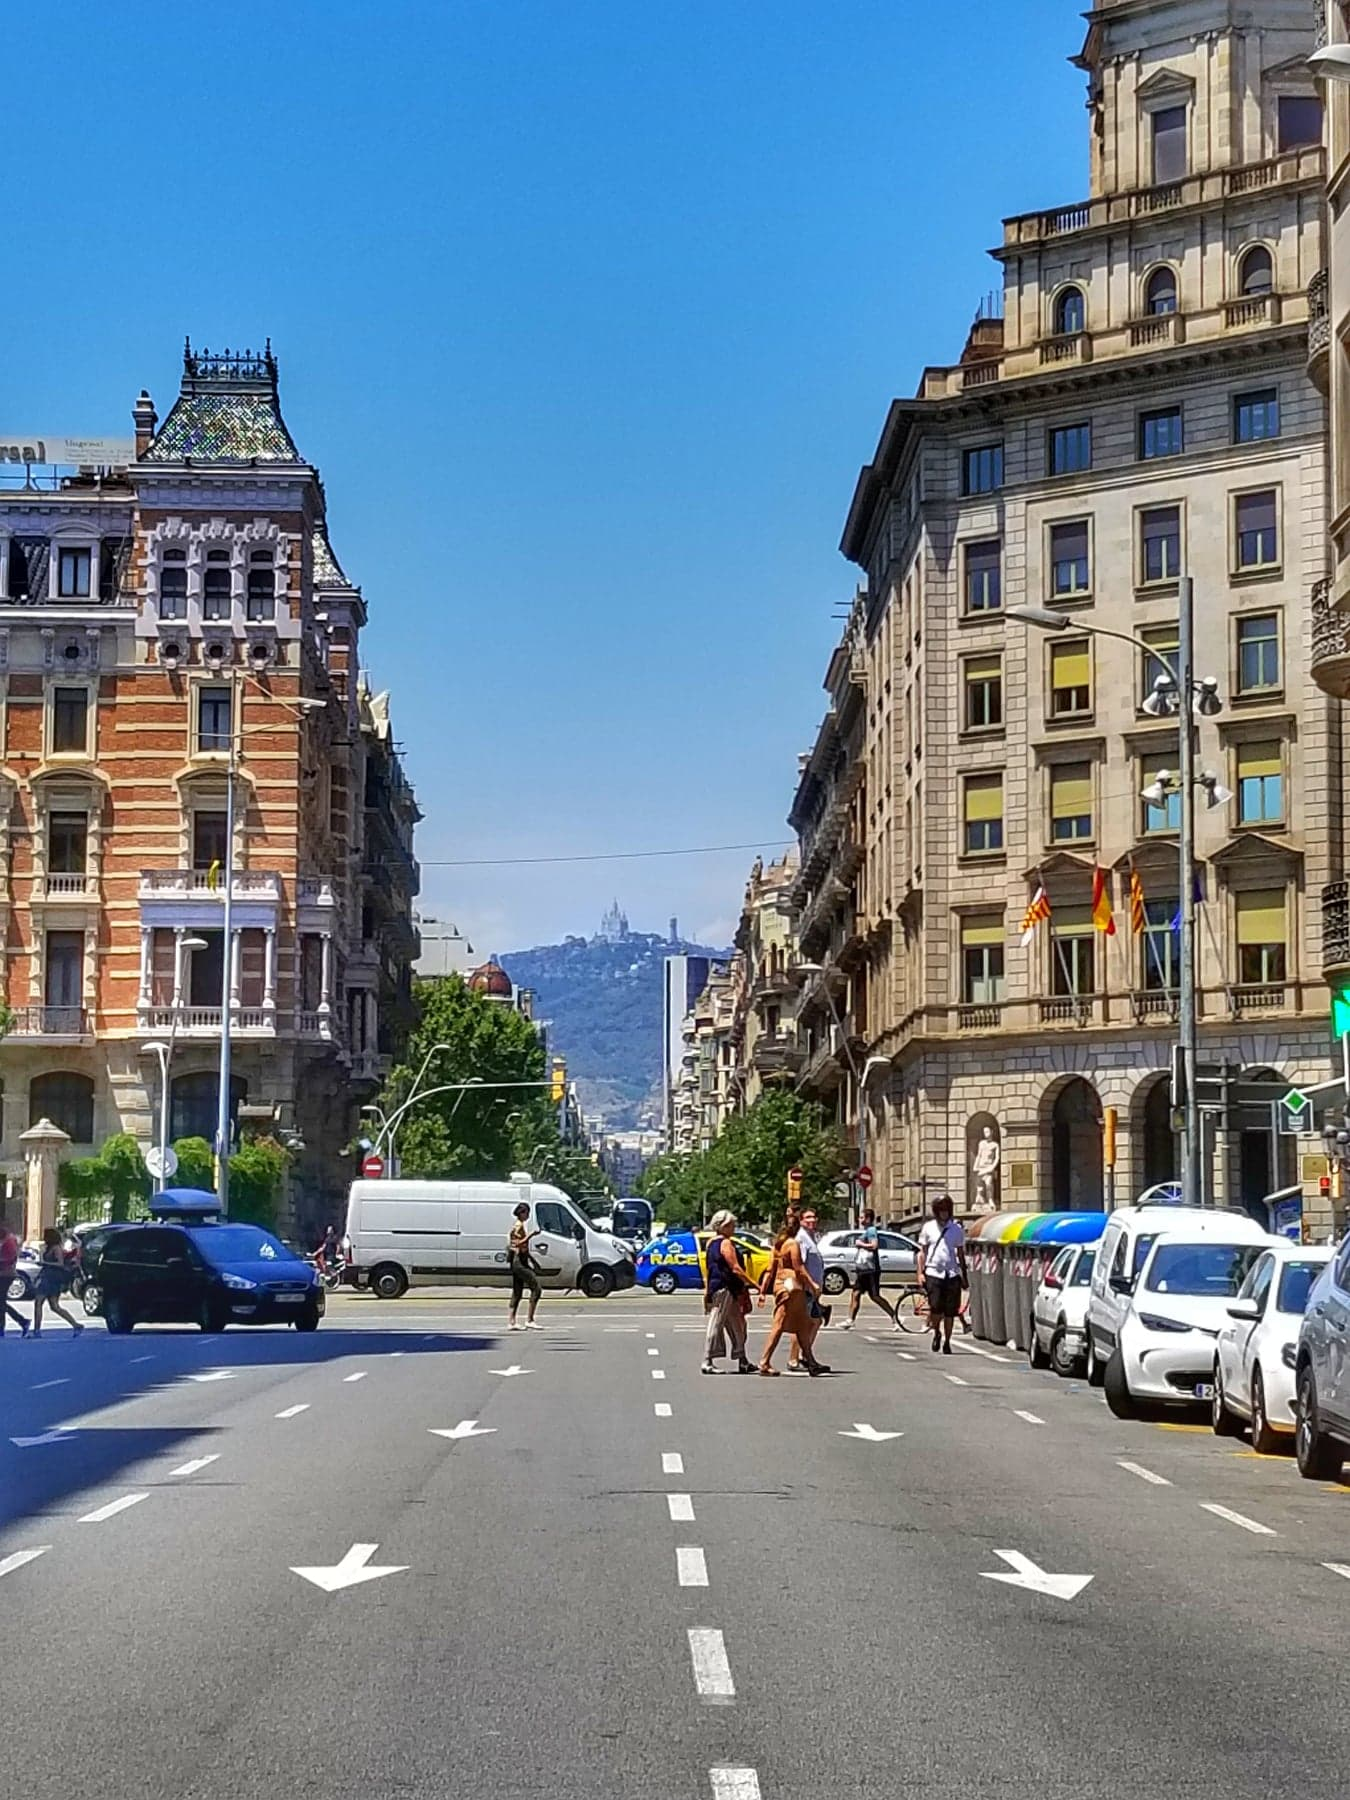 Barcelona travel tips - where to stay